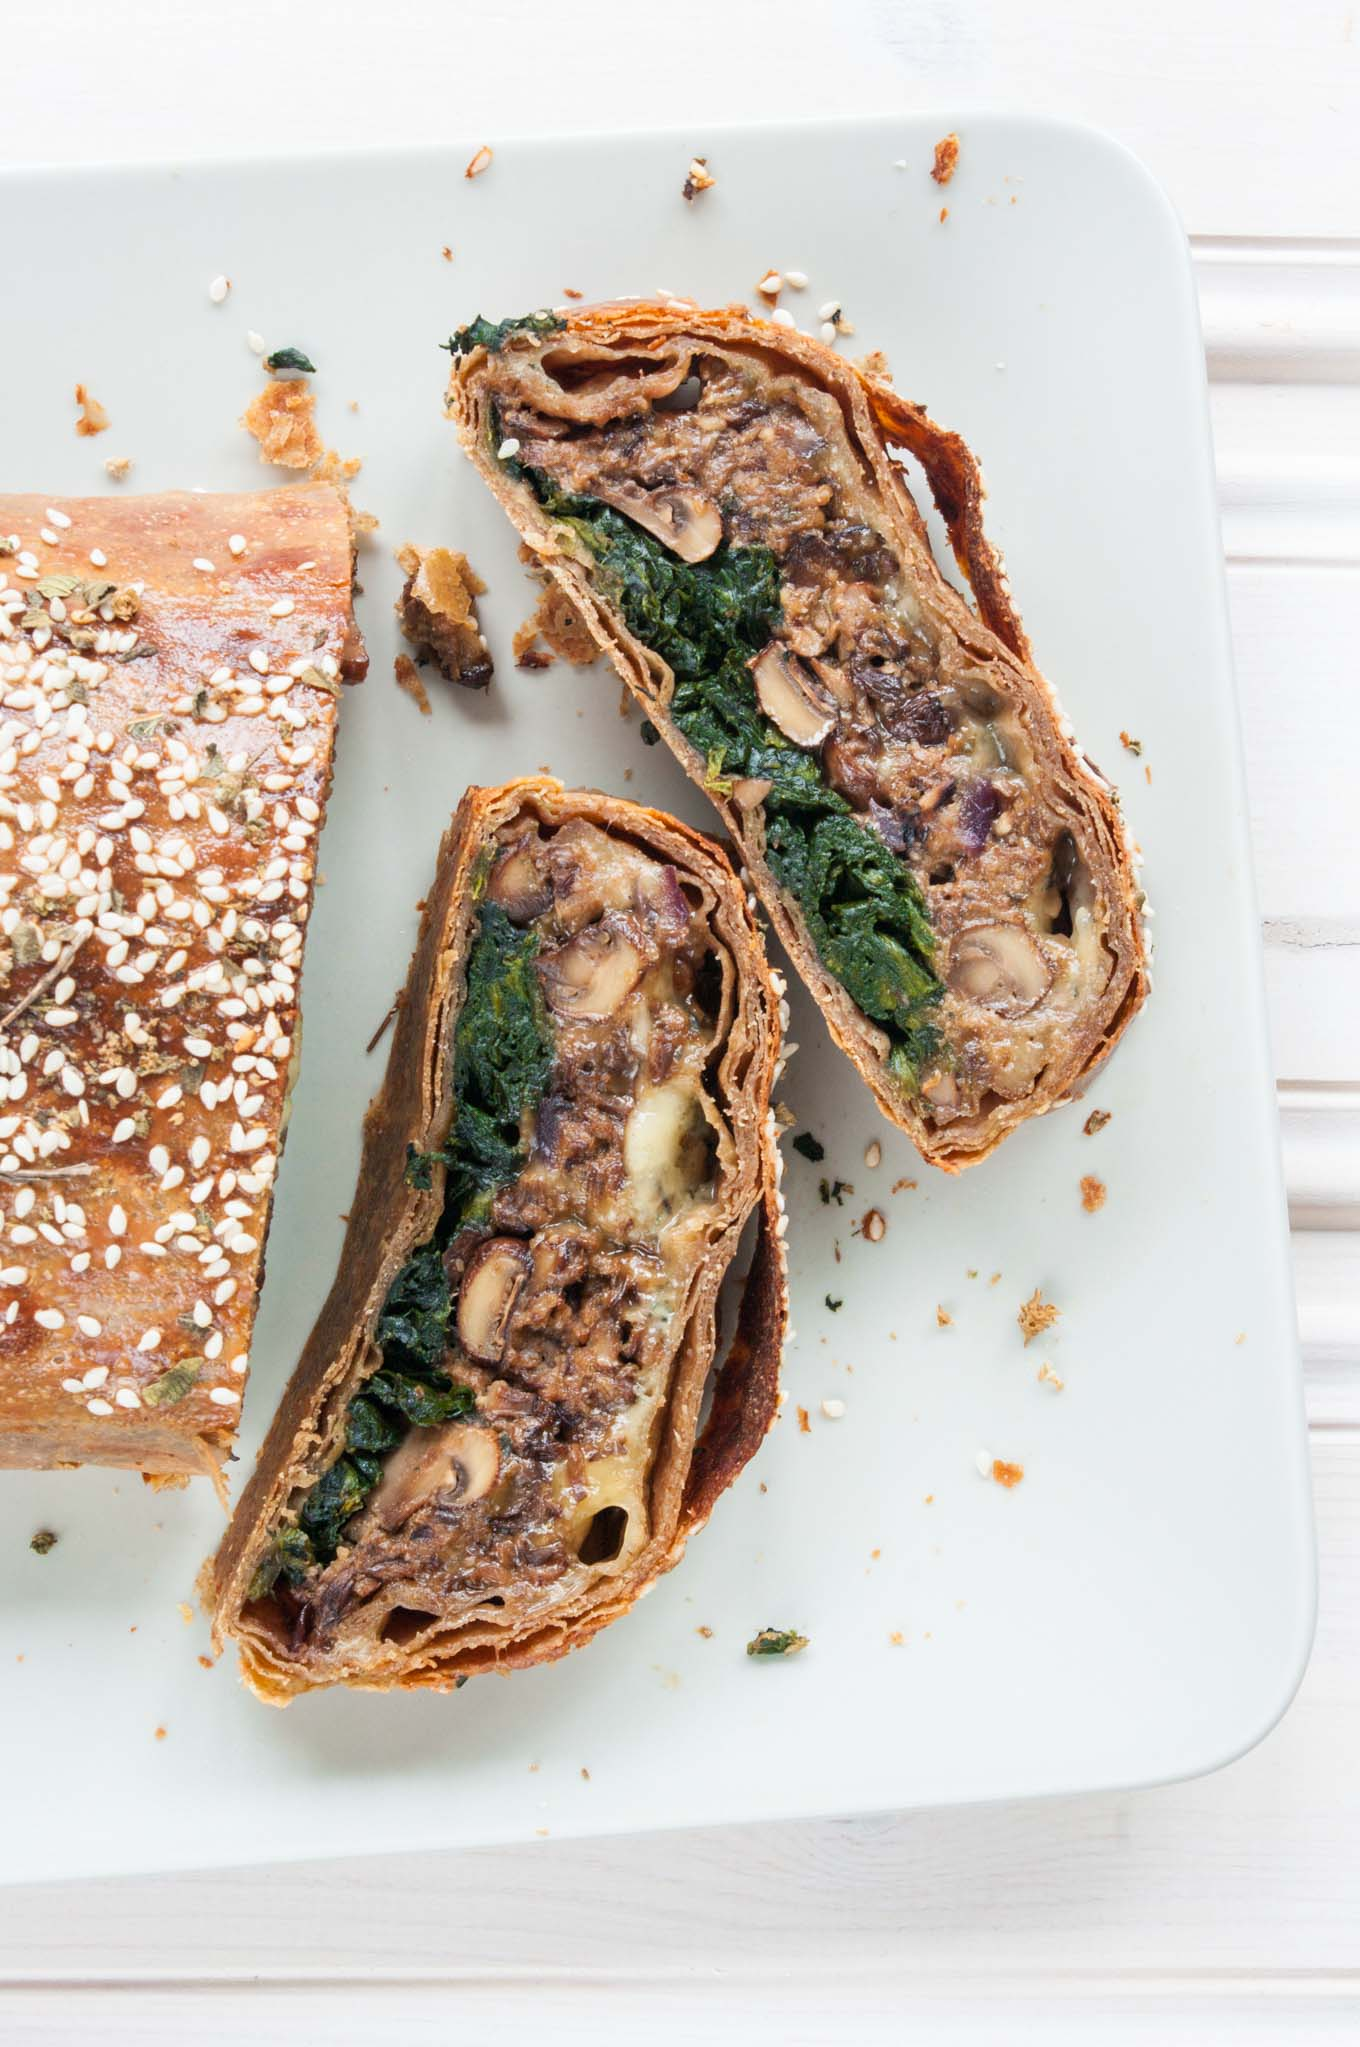 Mushroom Wellington with Spinach – This spectacular mushroom Wellington recipe is a fabulous vegetarian main course (easily made vegan) – great for Christmas or roast dinners, when you want the meatless option to really outshine the competition. Garlic mushroom filling, seasoned spinach and melted blue cheese (optional), wrapped in thin, flaky layers of spelt pastry. By @deliciouscratch | deliciousfromscratch.com